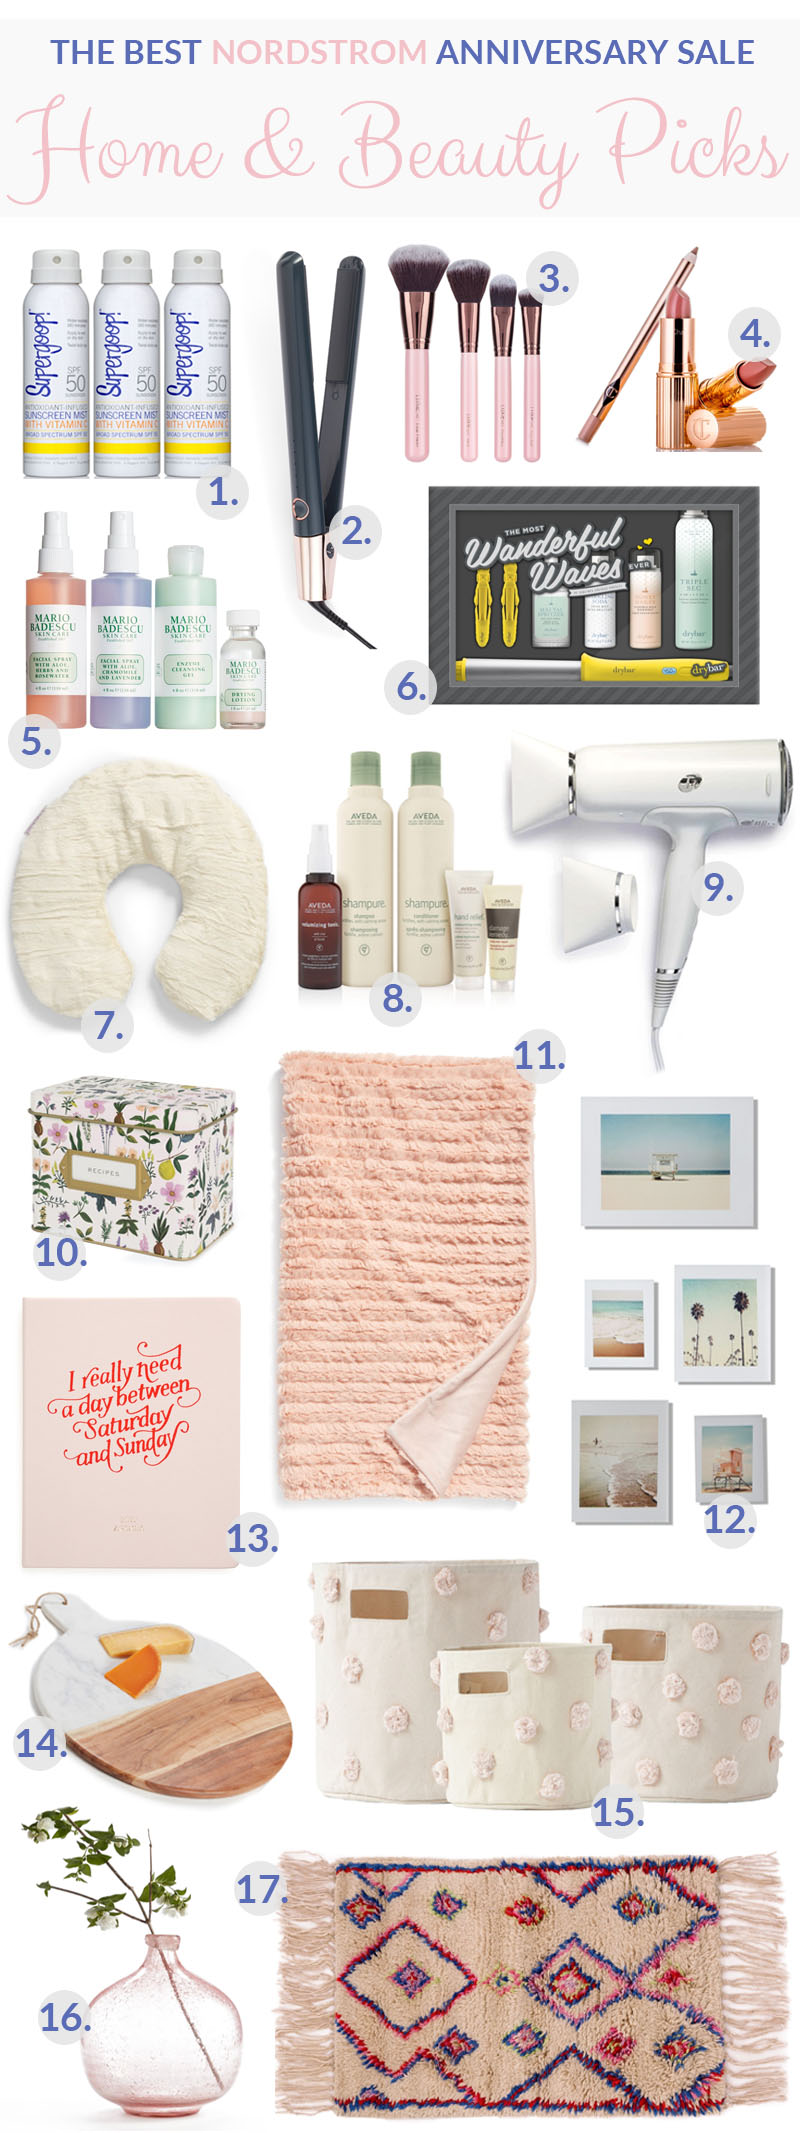 The Best Nordstrom Anniversary Sale Home & Beauty Picks